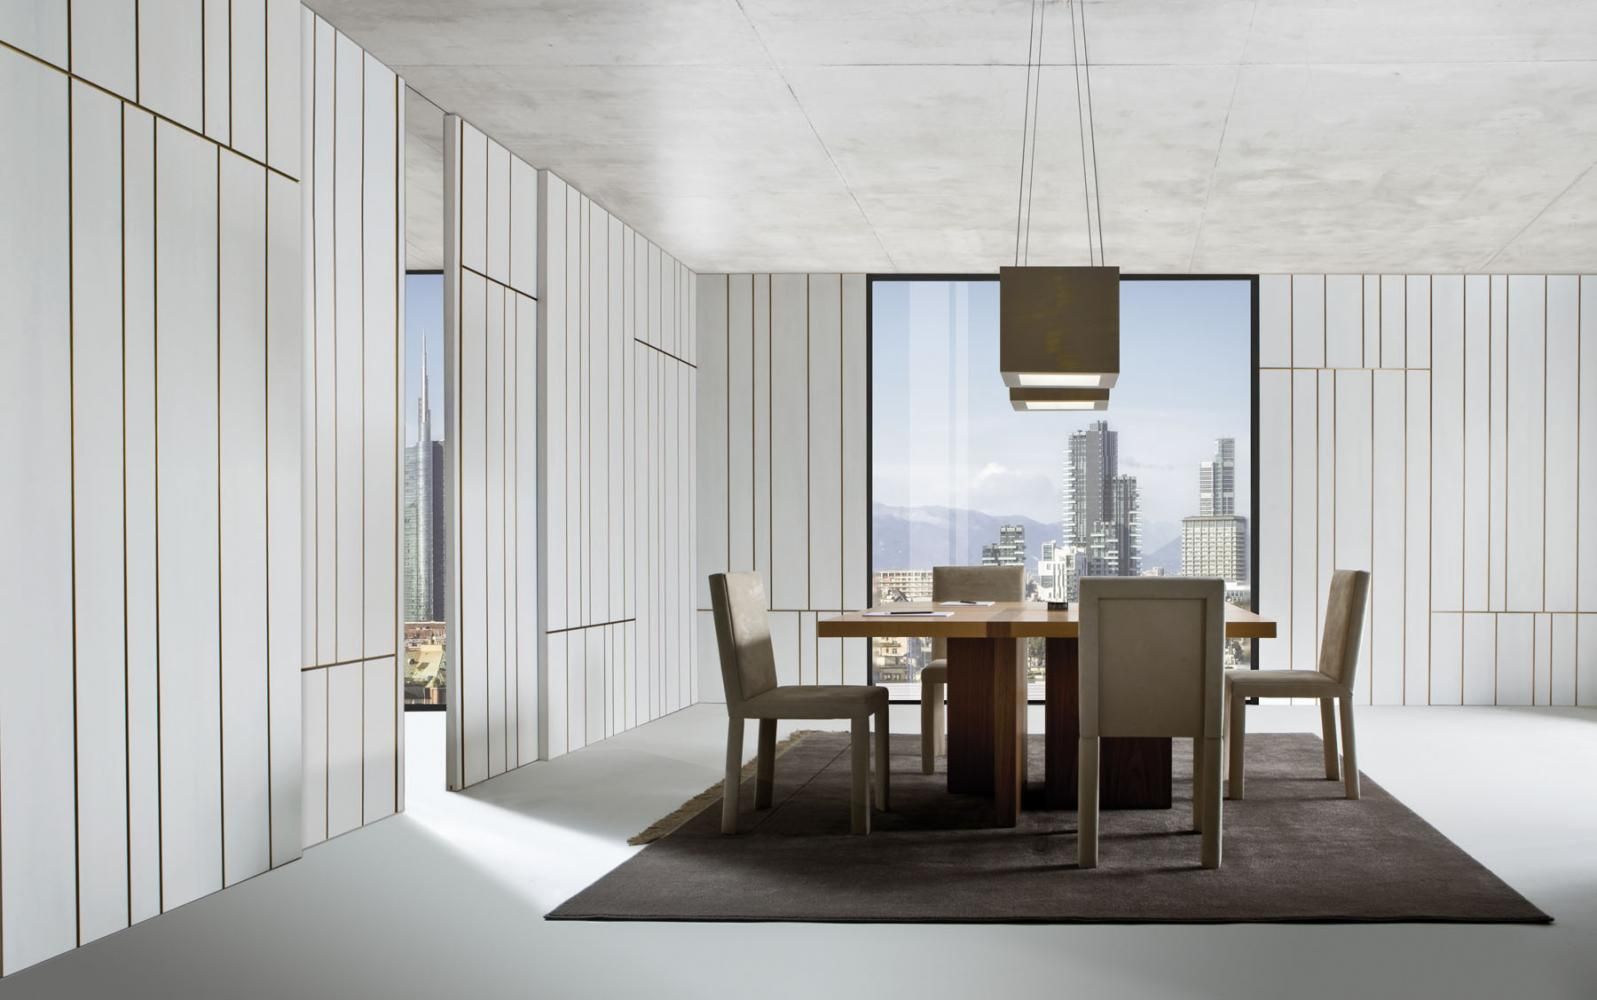 office wall panel. Line Is A Sophisticated Wall Panels System Characterized By Design Of Brass Lines That Elegantly Decorates The Wood Surface. Office Panel E